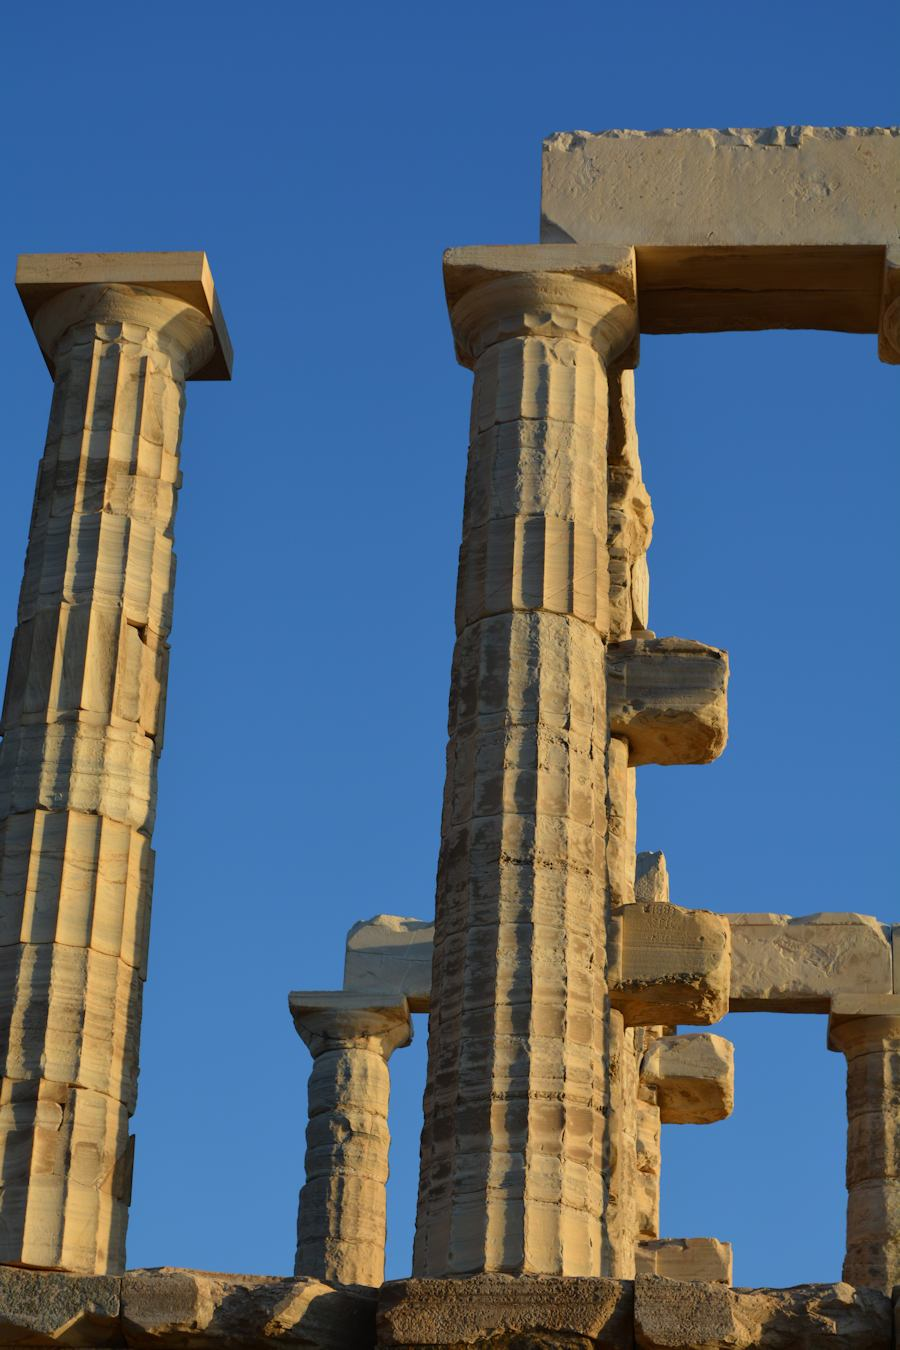 Cape Sounion, columns of the temple